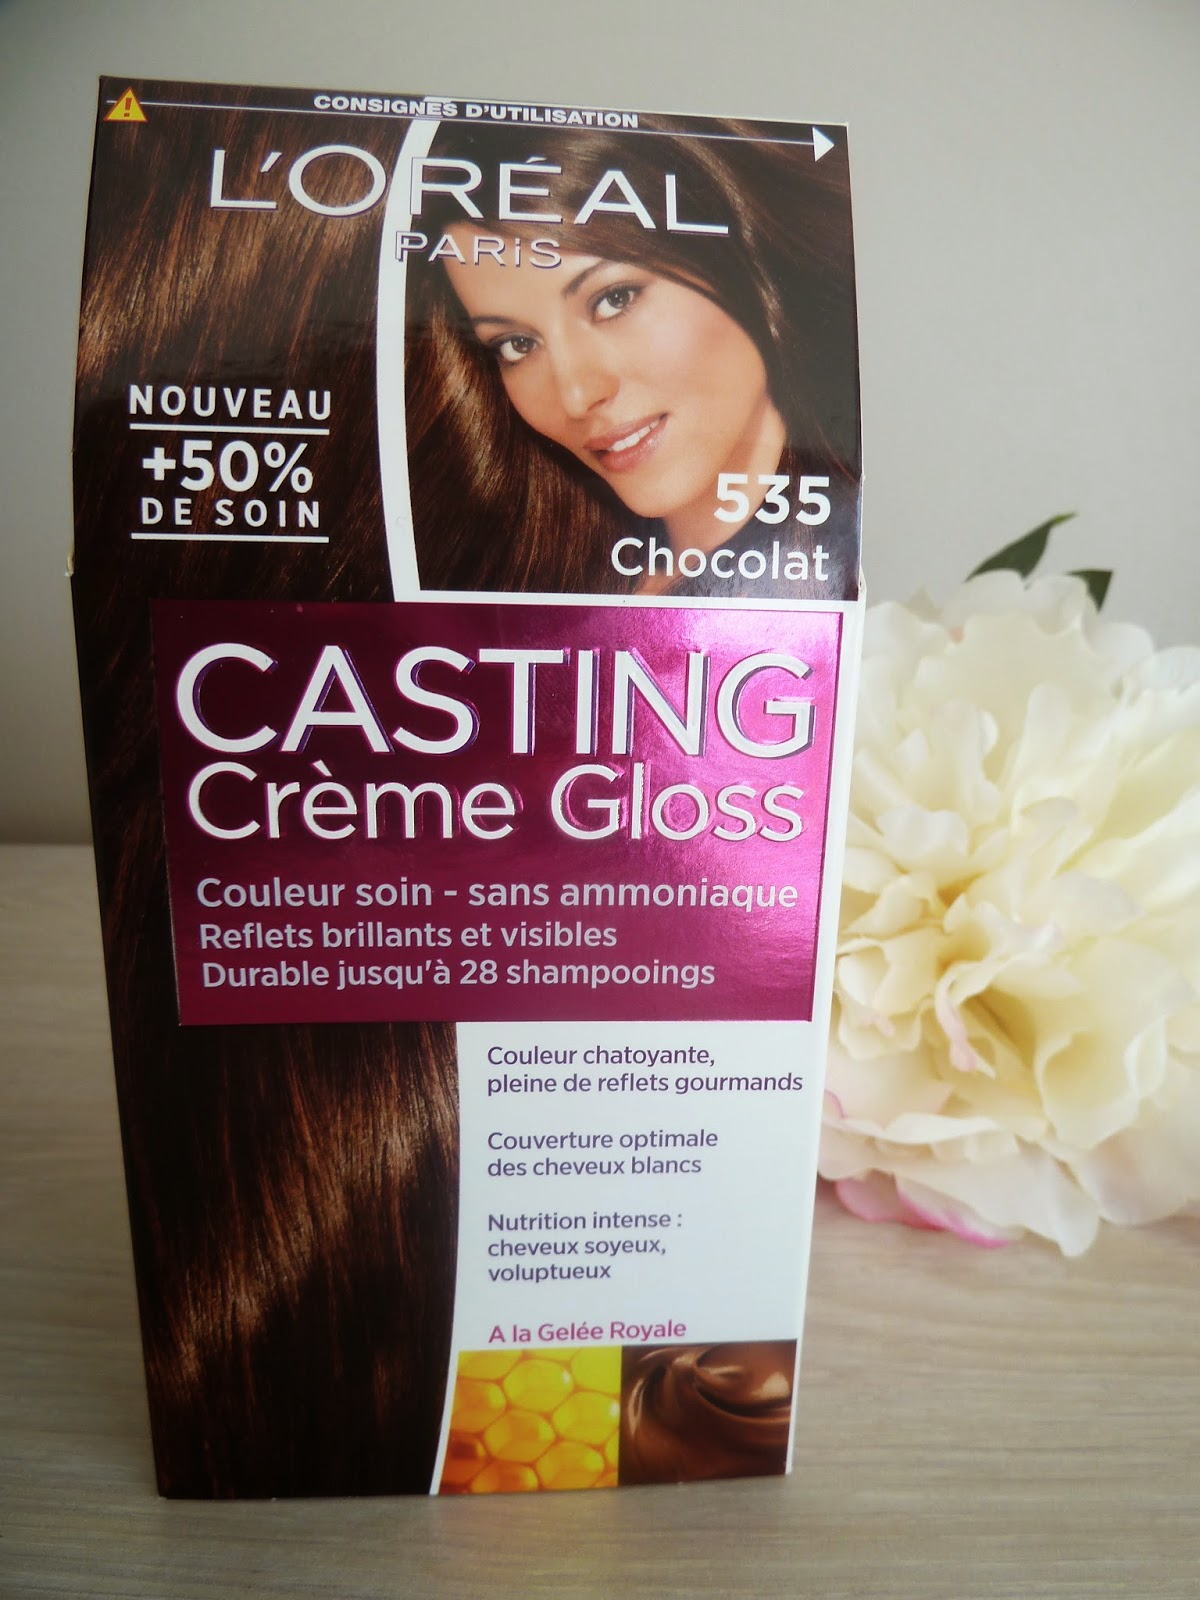 du chocolat sur mes cheveux casting crme gloss de loreal - Coloration Gloss Chocolat